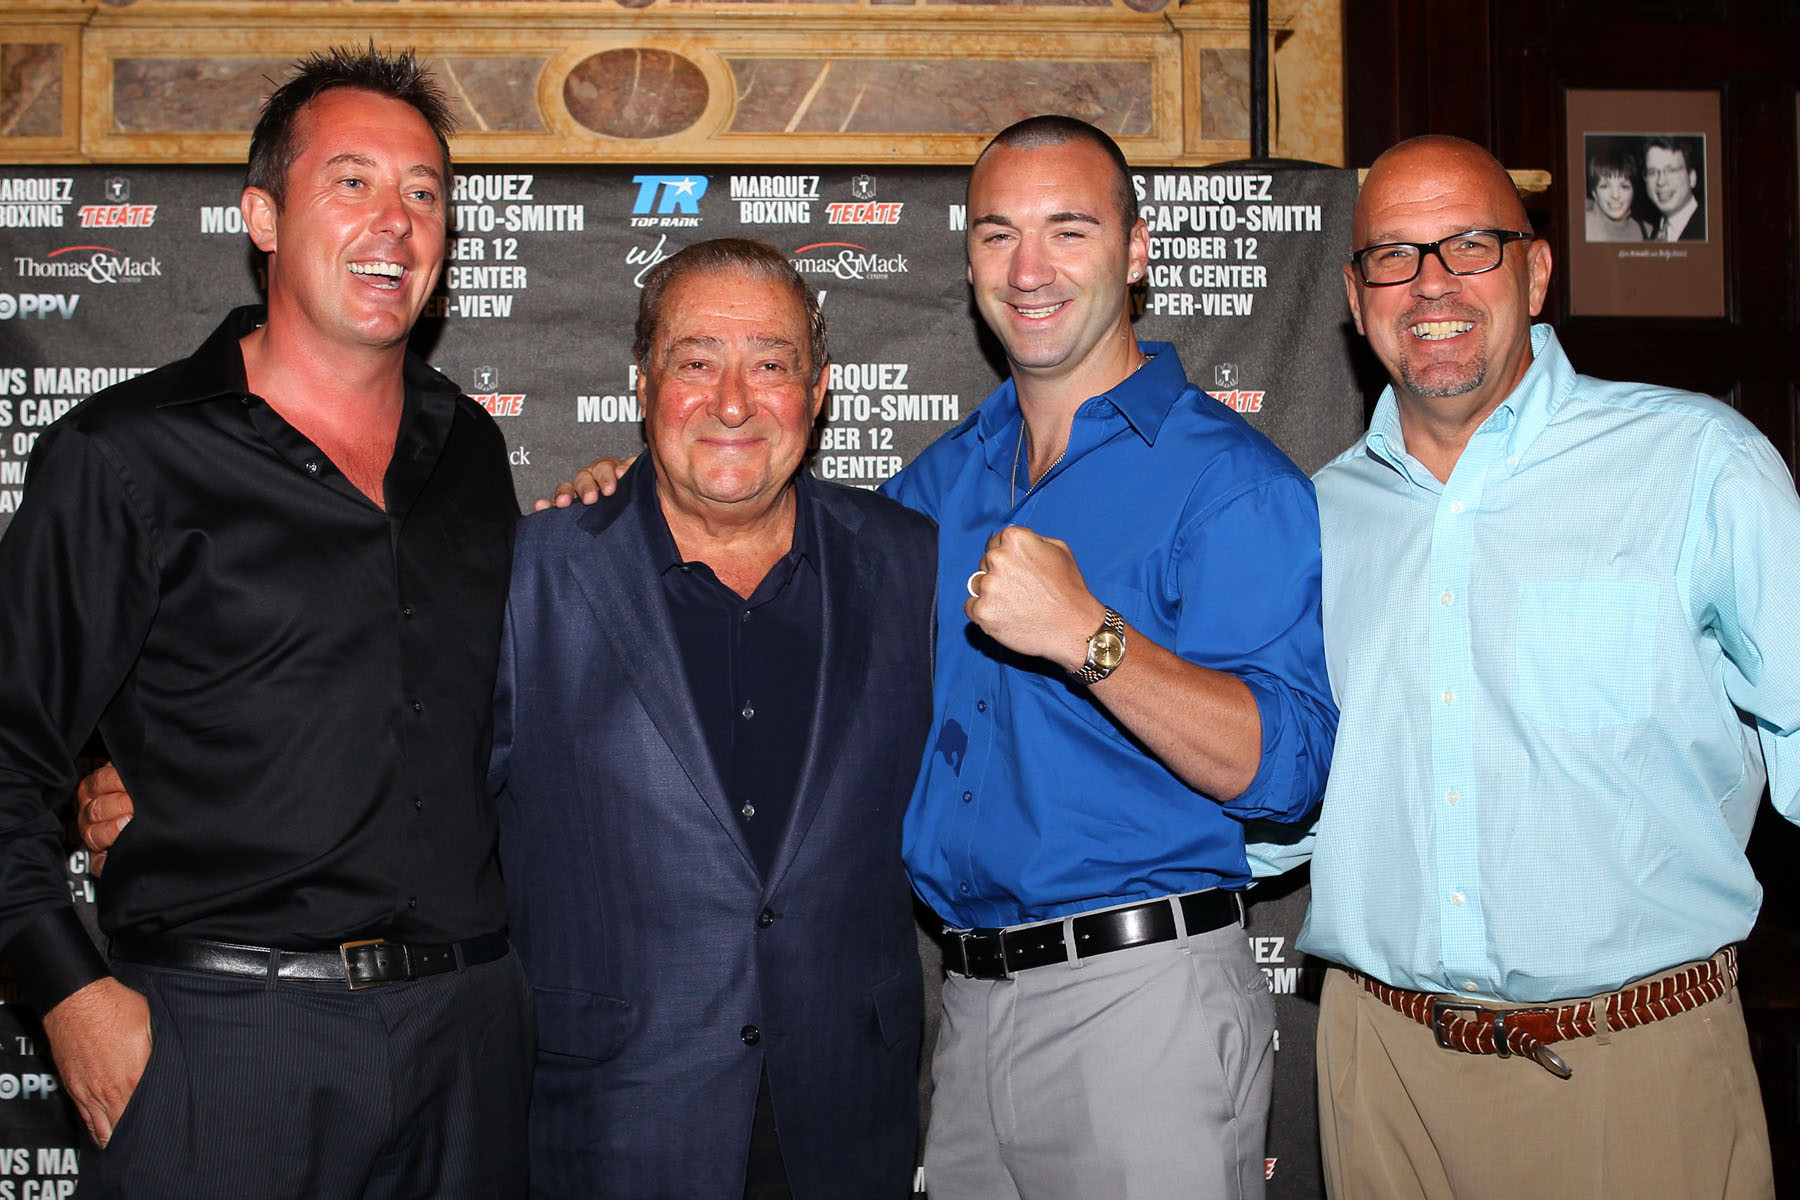 Monaghan's Manager, P.J. Kavanagh, far left, promoter and Top Rank co-founder Bob Arum, Monaghan and Top Rank Vice President Carl Moretti at Tuesday's press conference at the Friars Club.